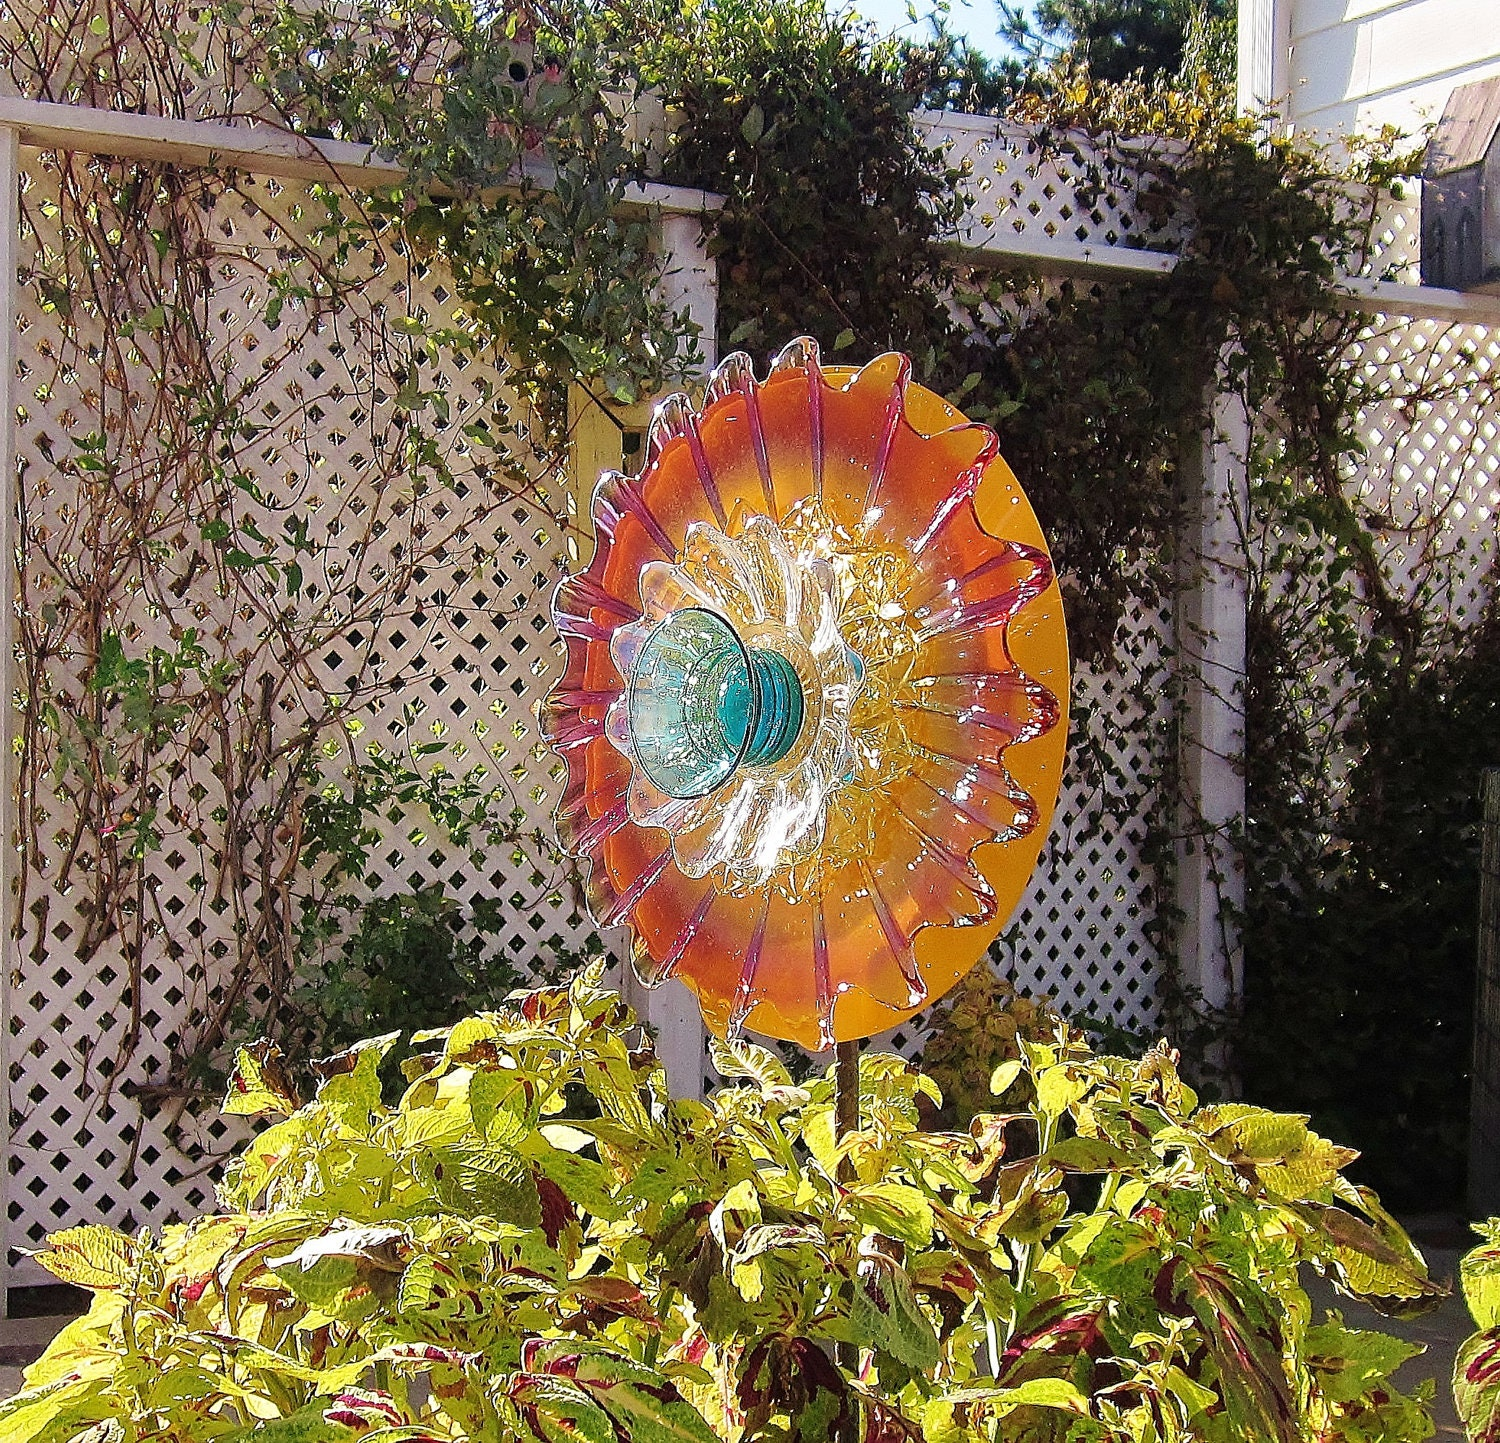 Garden yard art outdoor decor upcycled recycled colorful glass for Upcycled yard decor